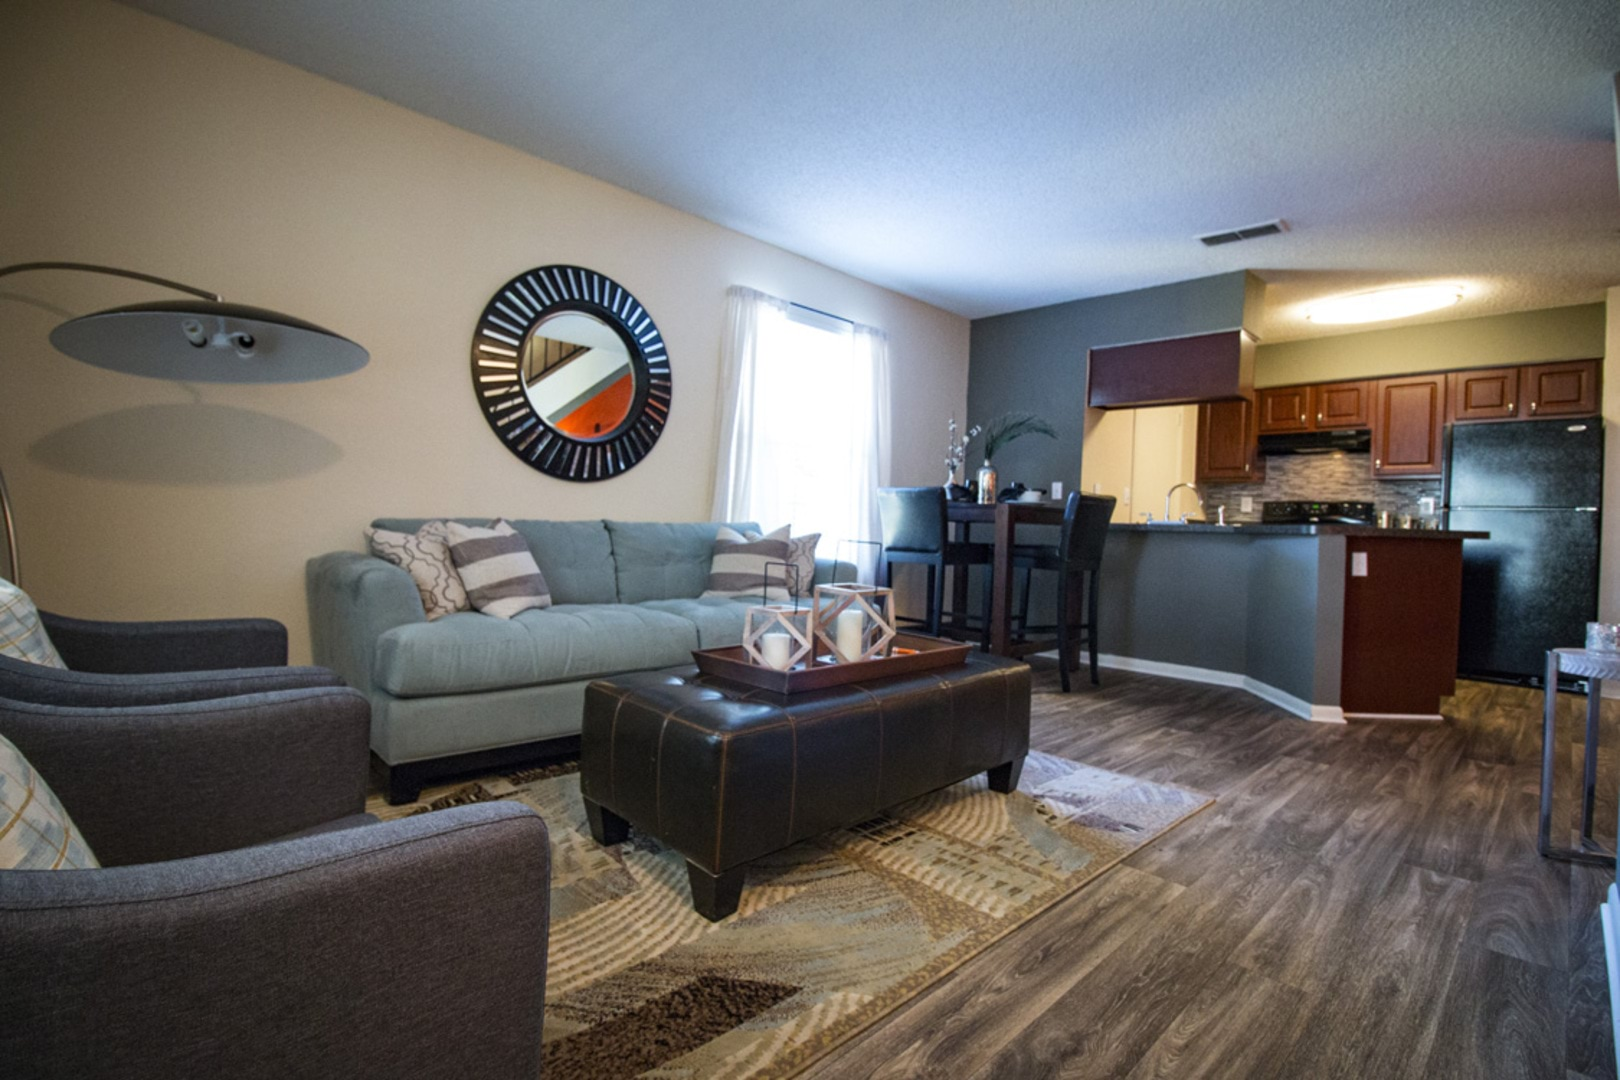 Apartments For Rent Altamonte Springs Fl The Glades